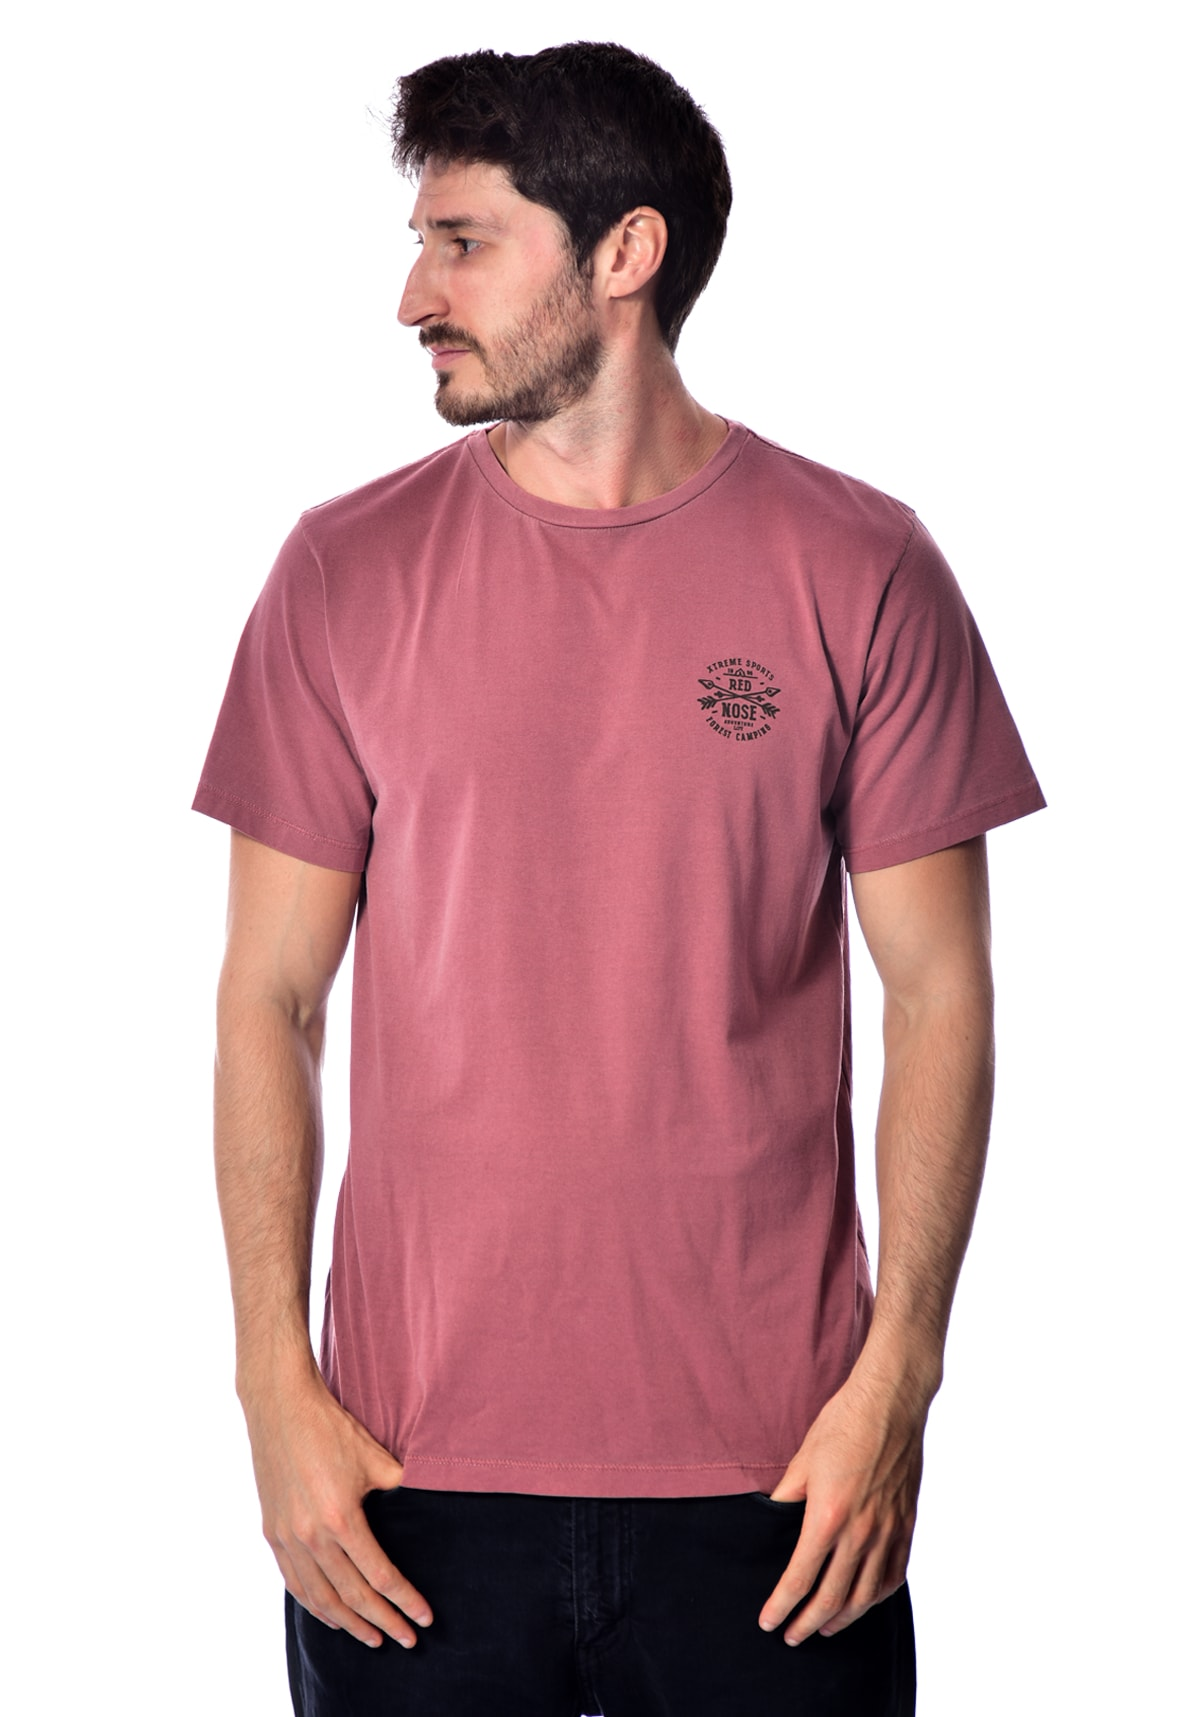 Camiseta Red Nose Forest Camp - Rosa P